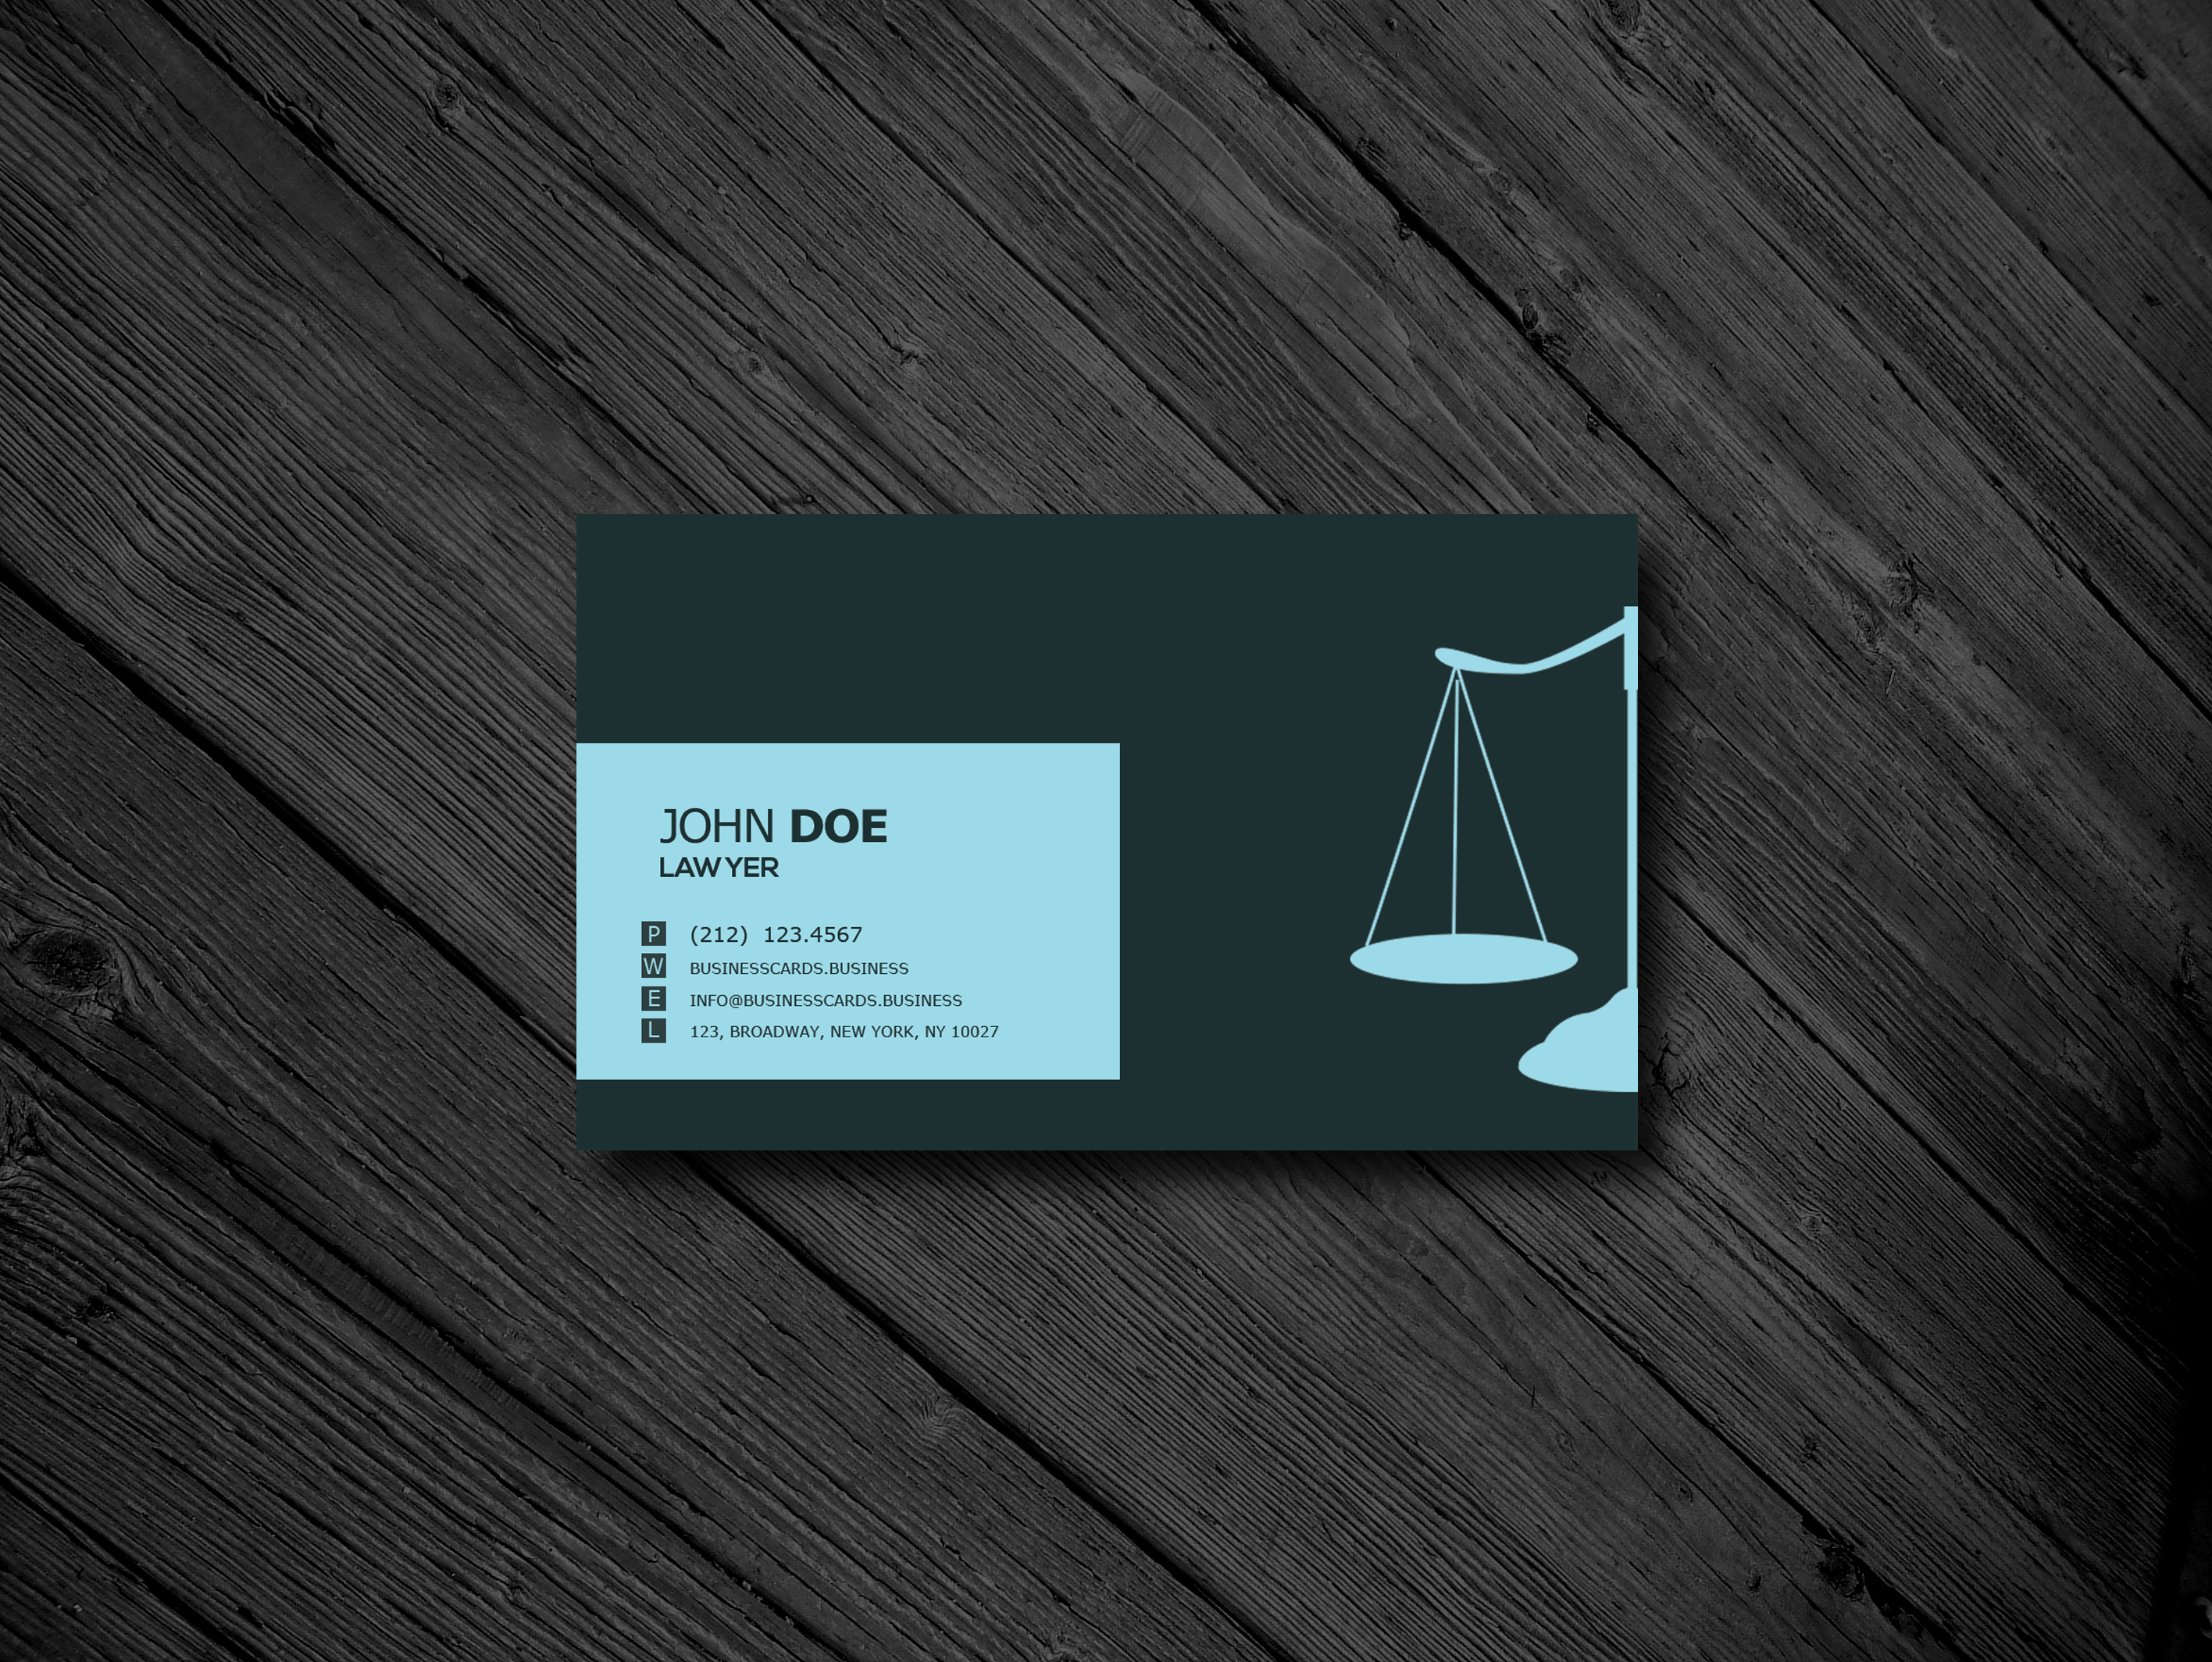 Free business card templates business cards templates free lawyer business card psd template cheaphphosting Images